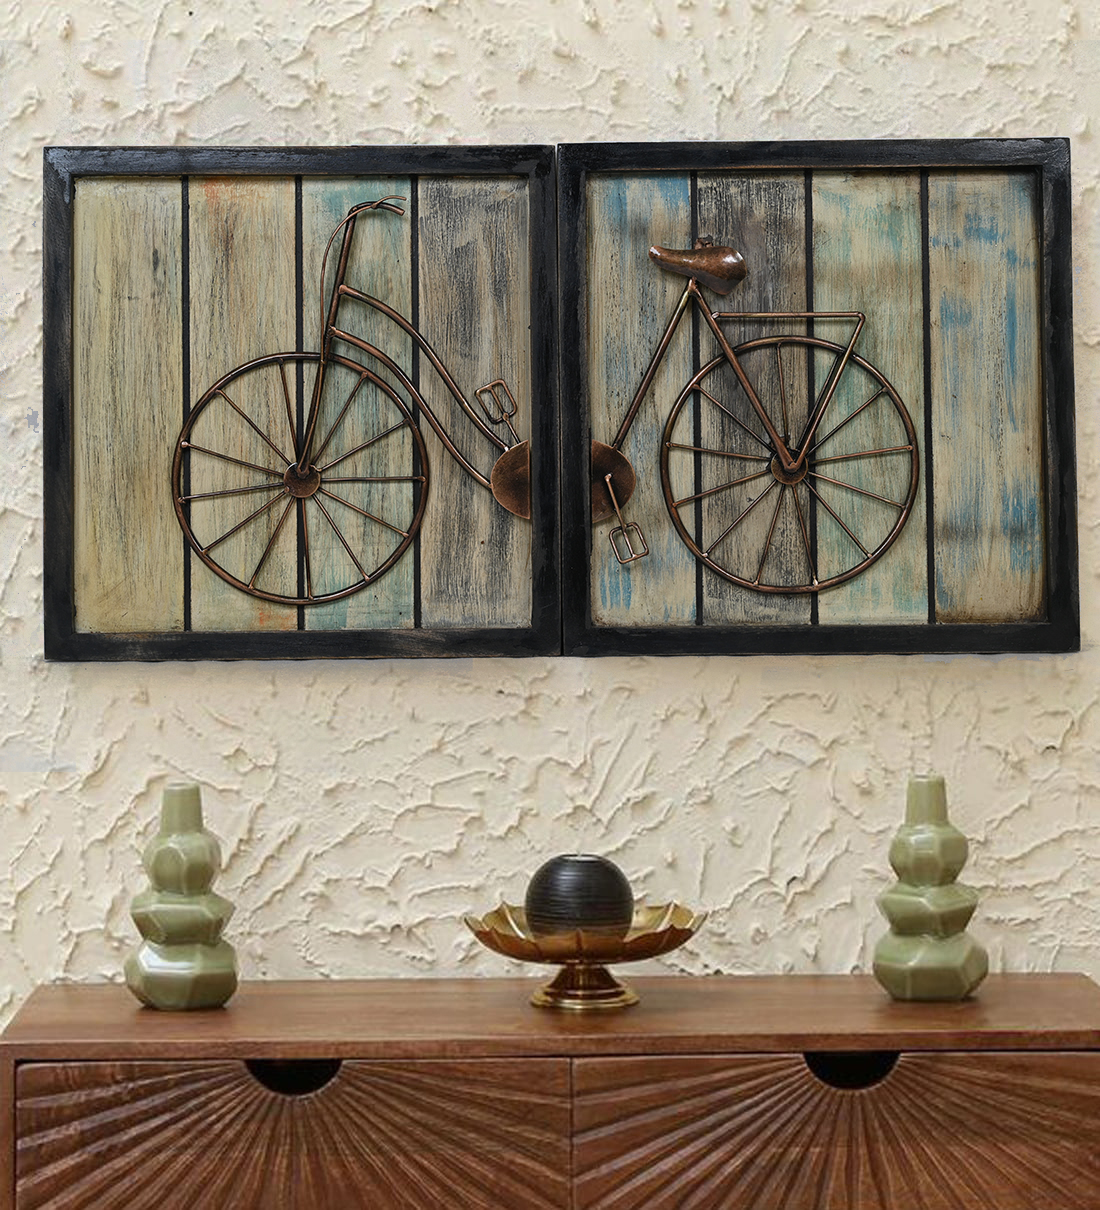 Double Frame Metal Cycle Panel for Wall Art decor